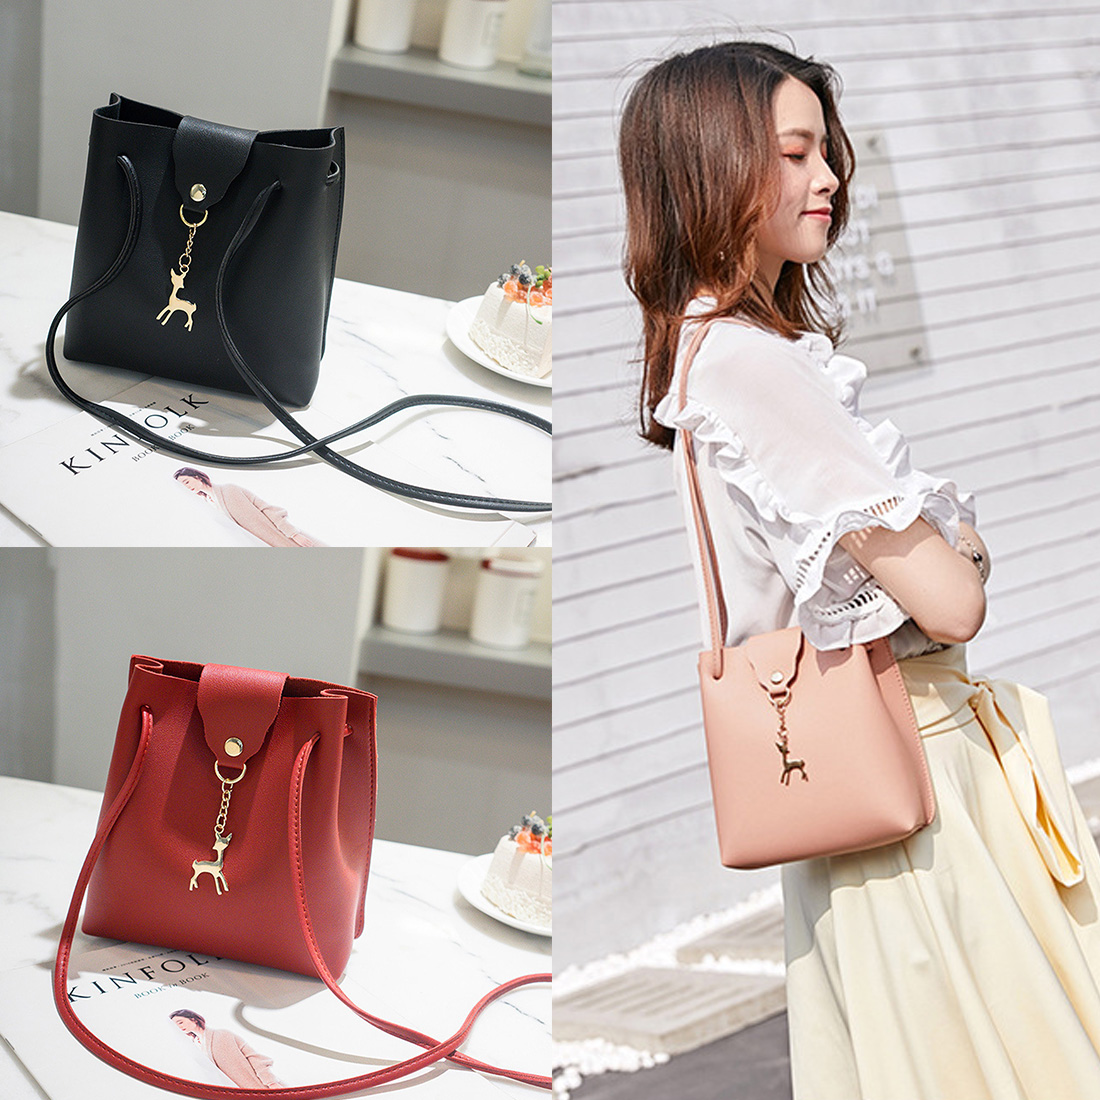 Fawn Bag female 2019 new tassel leather retro hand rub color vegetable tanned leather diagonal shoulder bagFawn Bag female 2019 new tassel leather retro hand rub color vegetable tanned leather diagonal shoulder bag